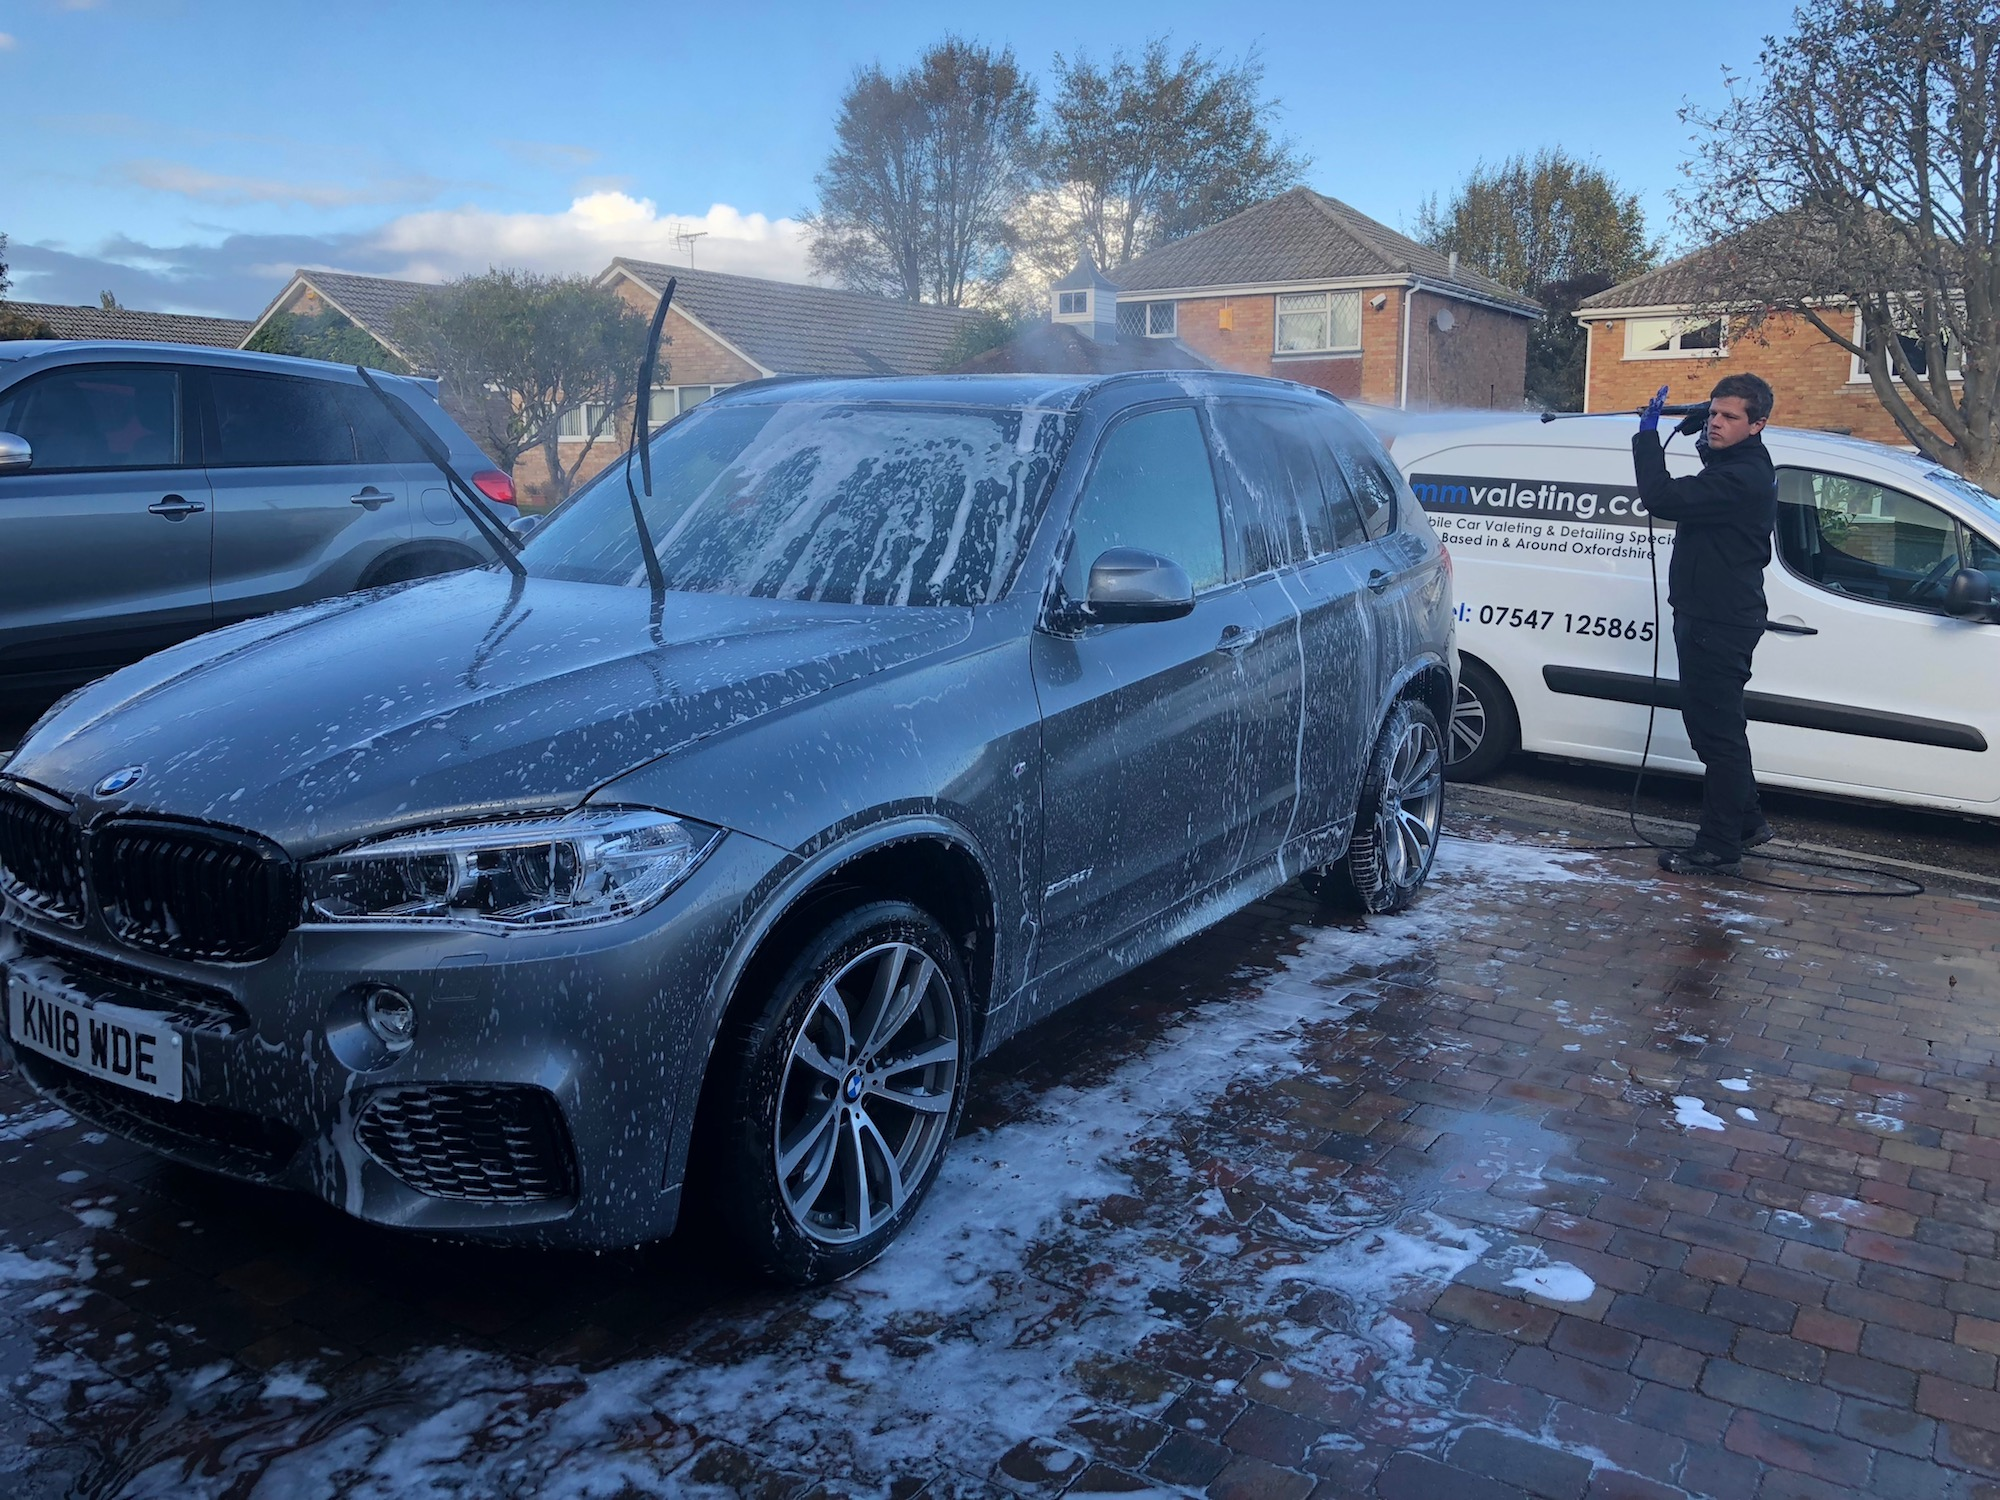 Mobile car valeting and car detailing in Oxford